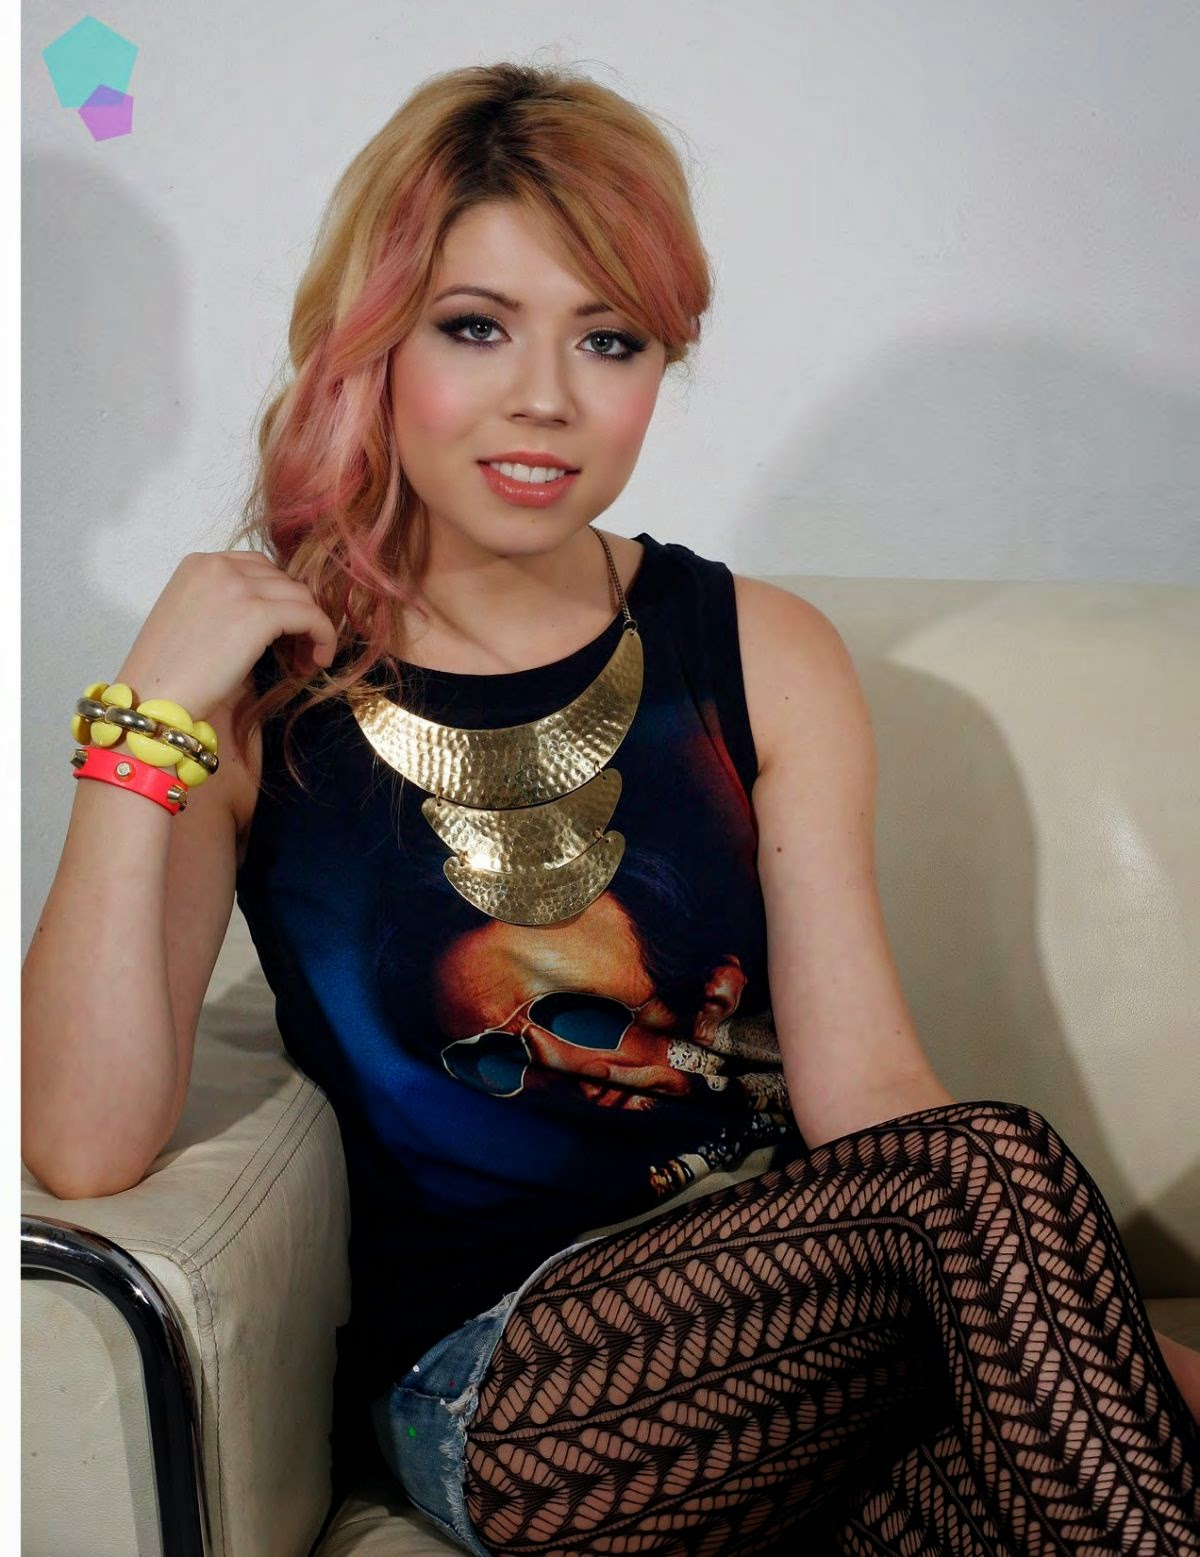 1200x1557 - Jennette McCurdy Wallpapers 22